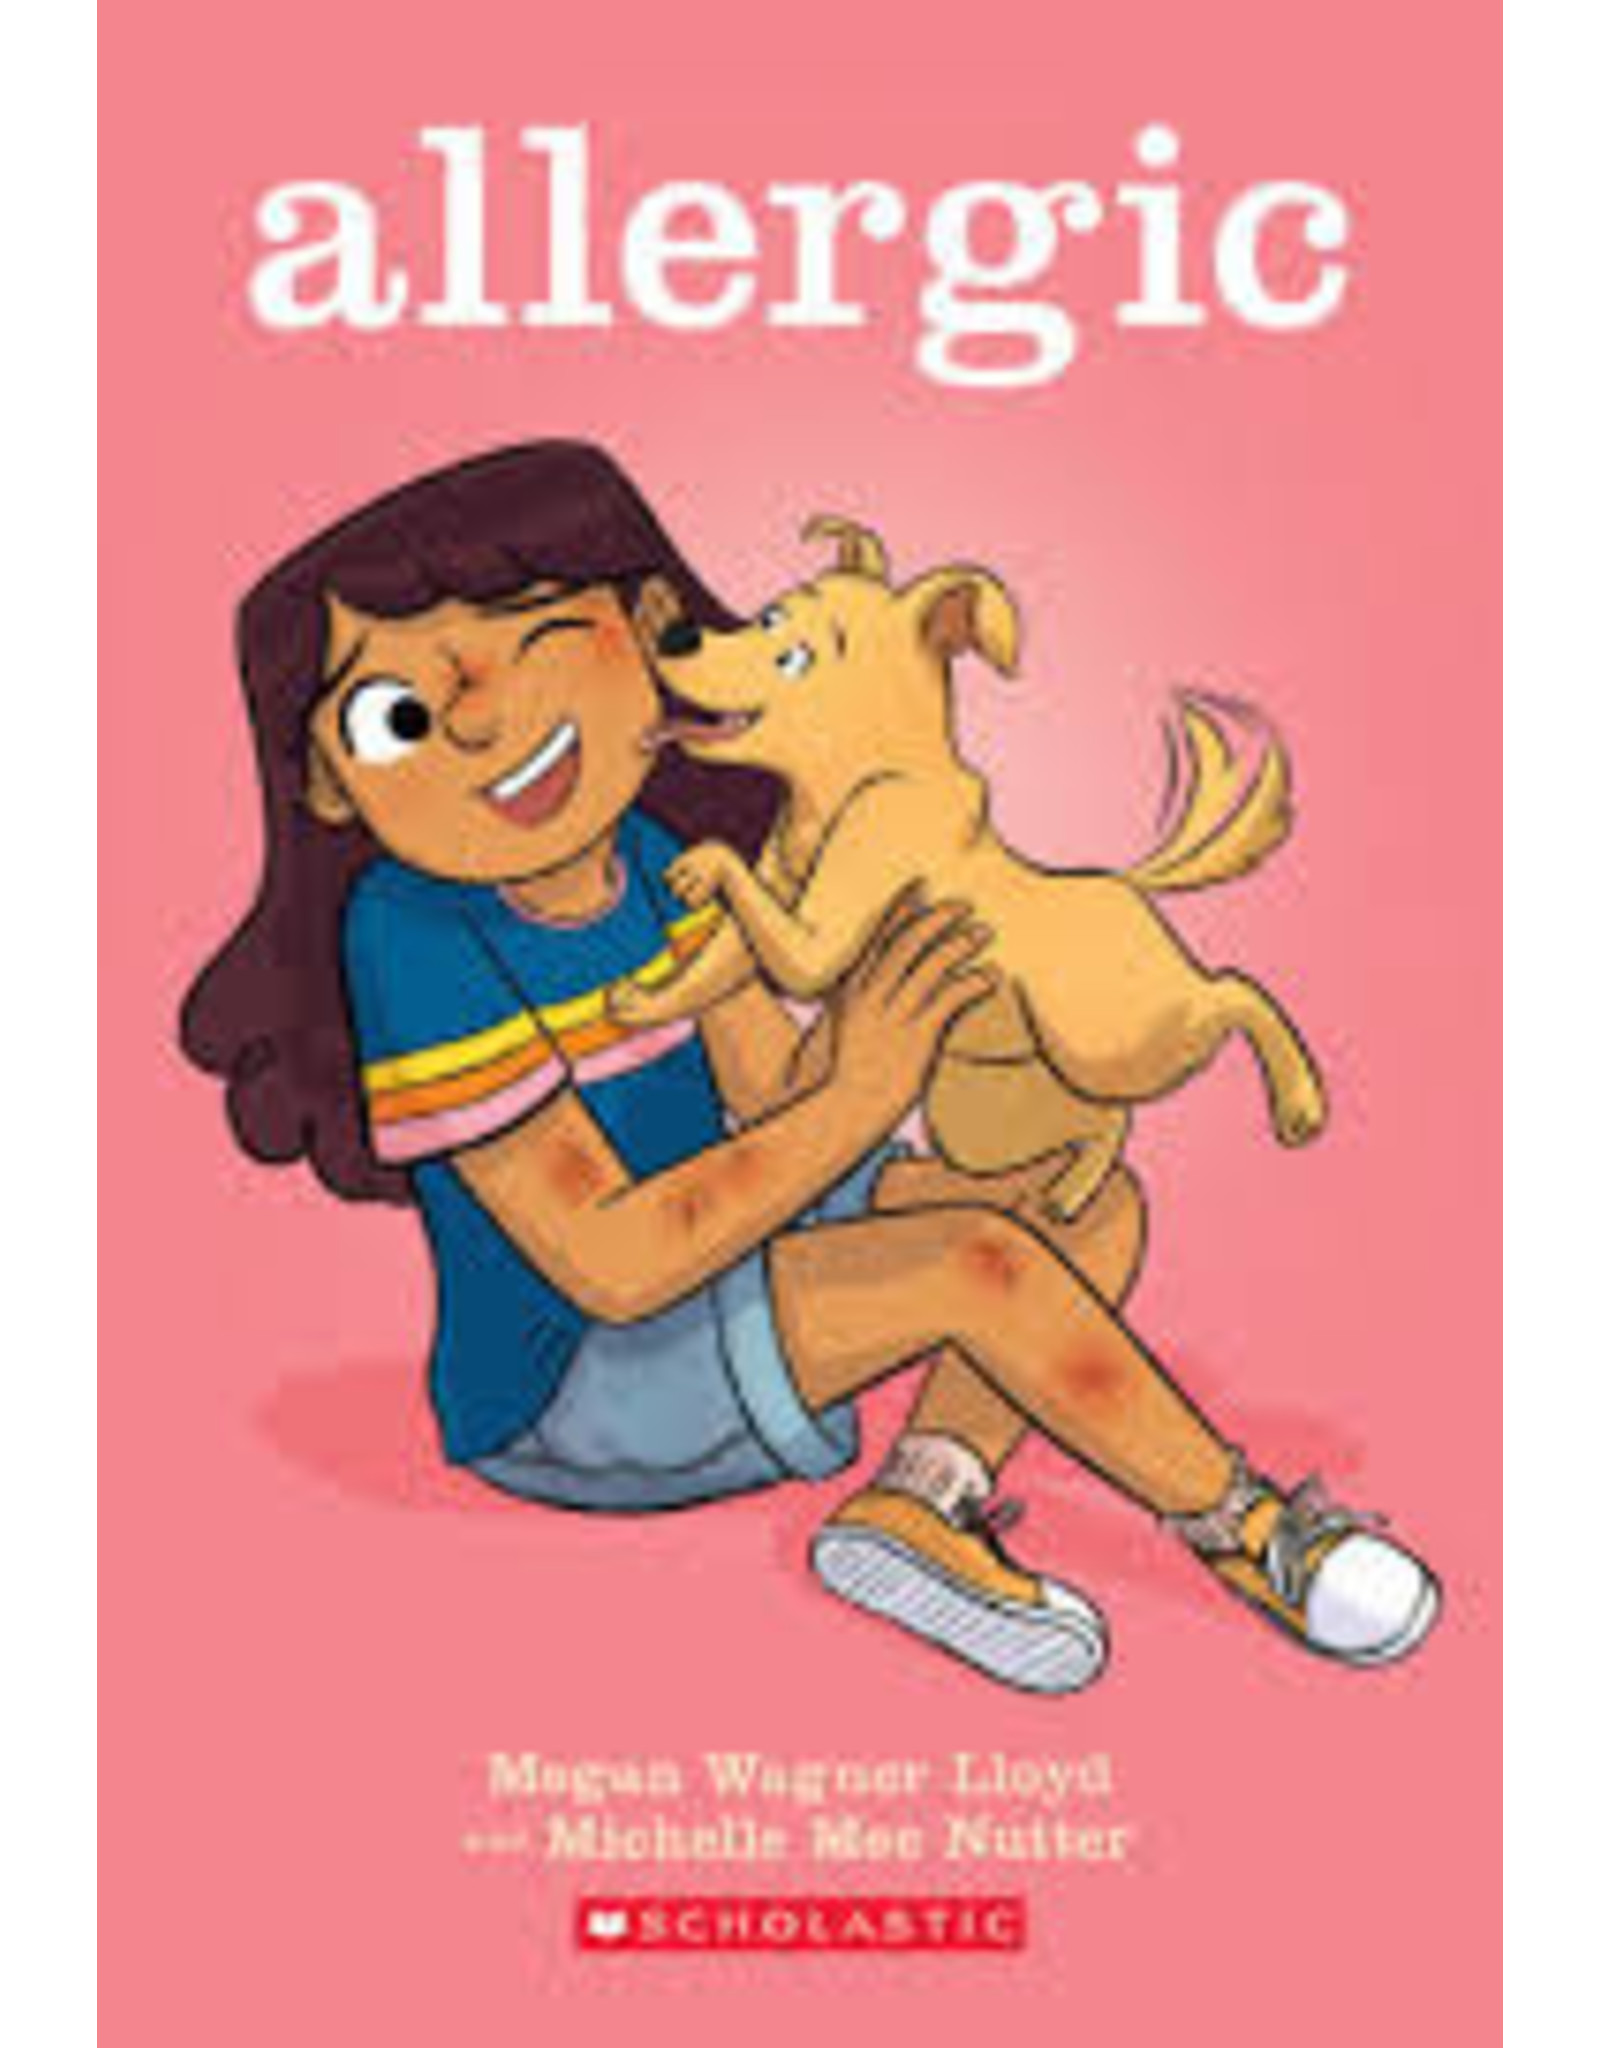 Books Allergic by Megan Wagner Lloyd and Michelle Mee Nutter (Parent's Night)